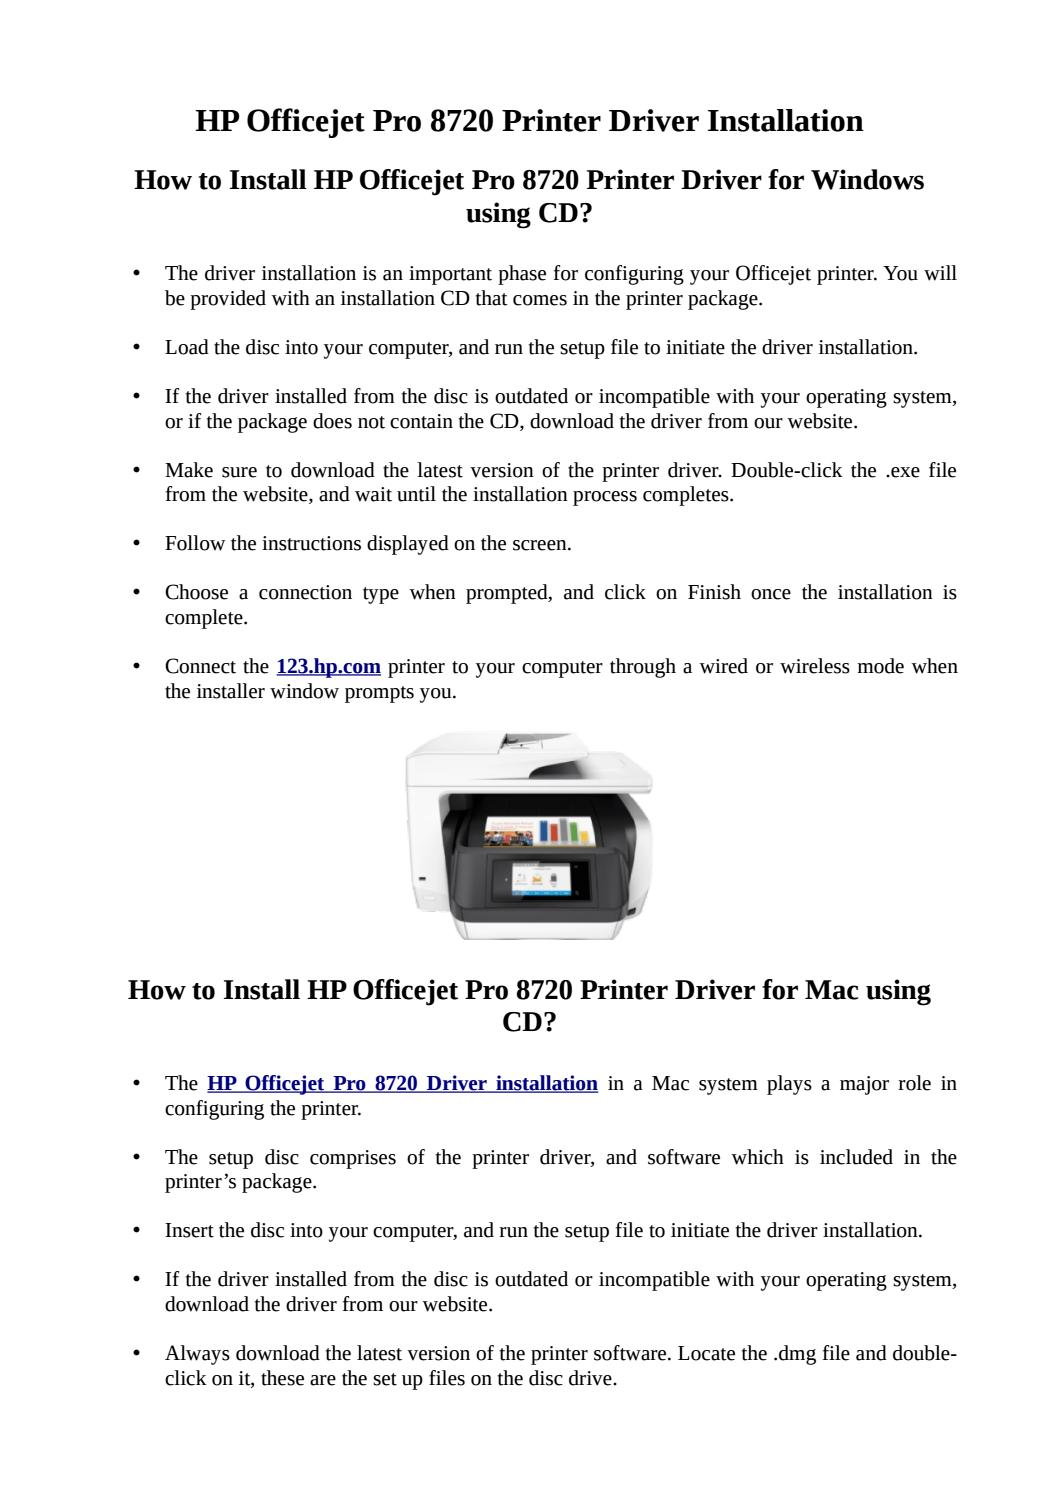 How To Install Hp Officejet Pro 8720 Driver Using Cd By Jack Leach Issuu